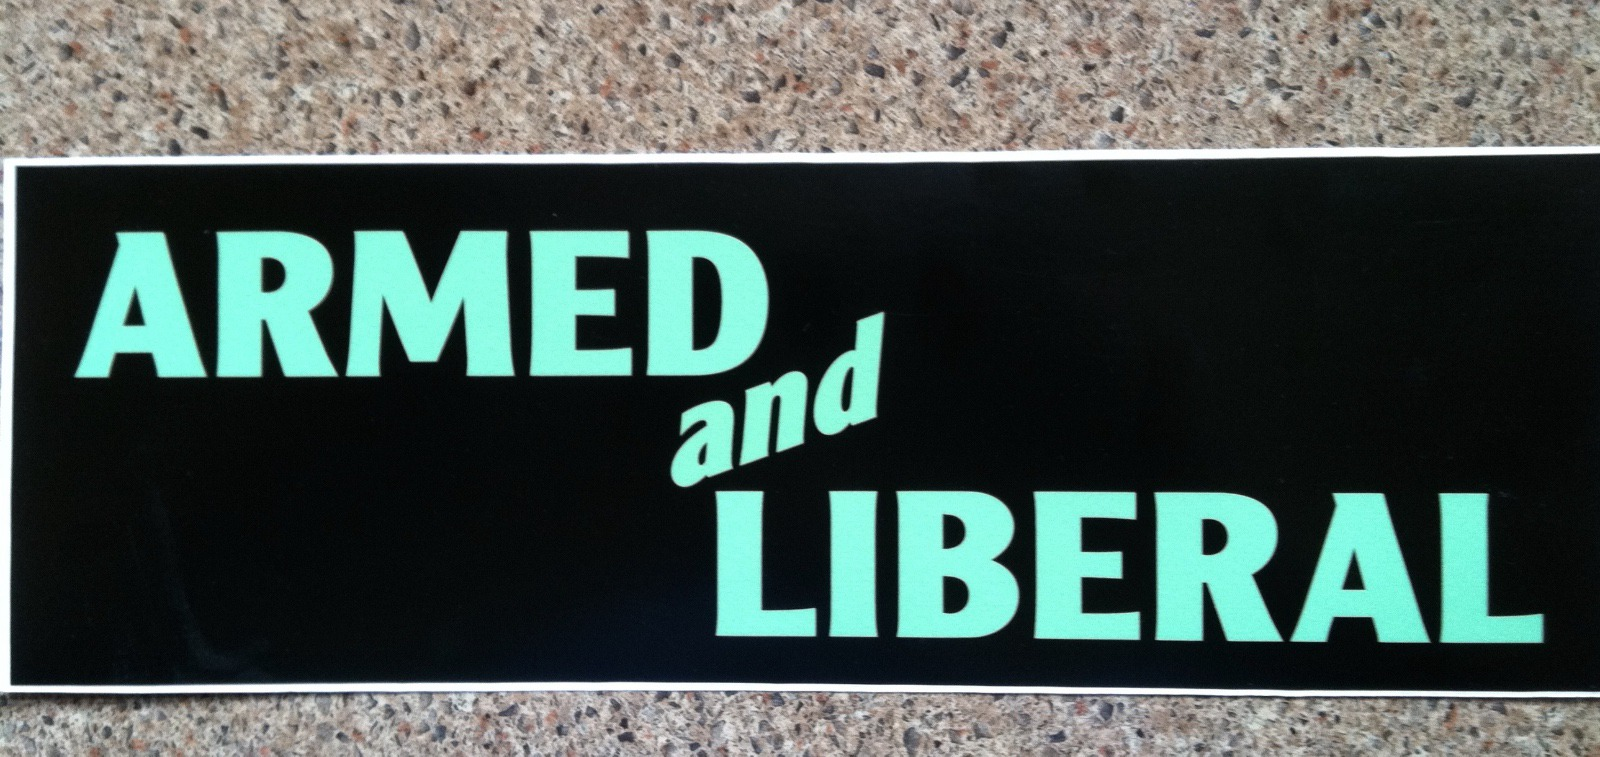 Crawford is revered by his friends for the number of thought-provoking, mischievous bumper stickers he's created over the years.   This one, which adorned the bumpers of many of his pals' vehicles (from pick-ups to Subarus), always turned heads